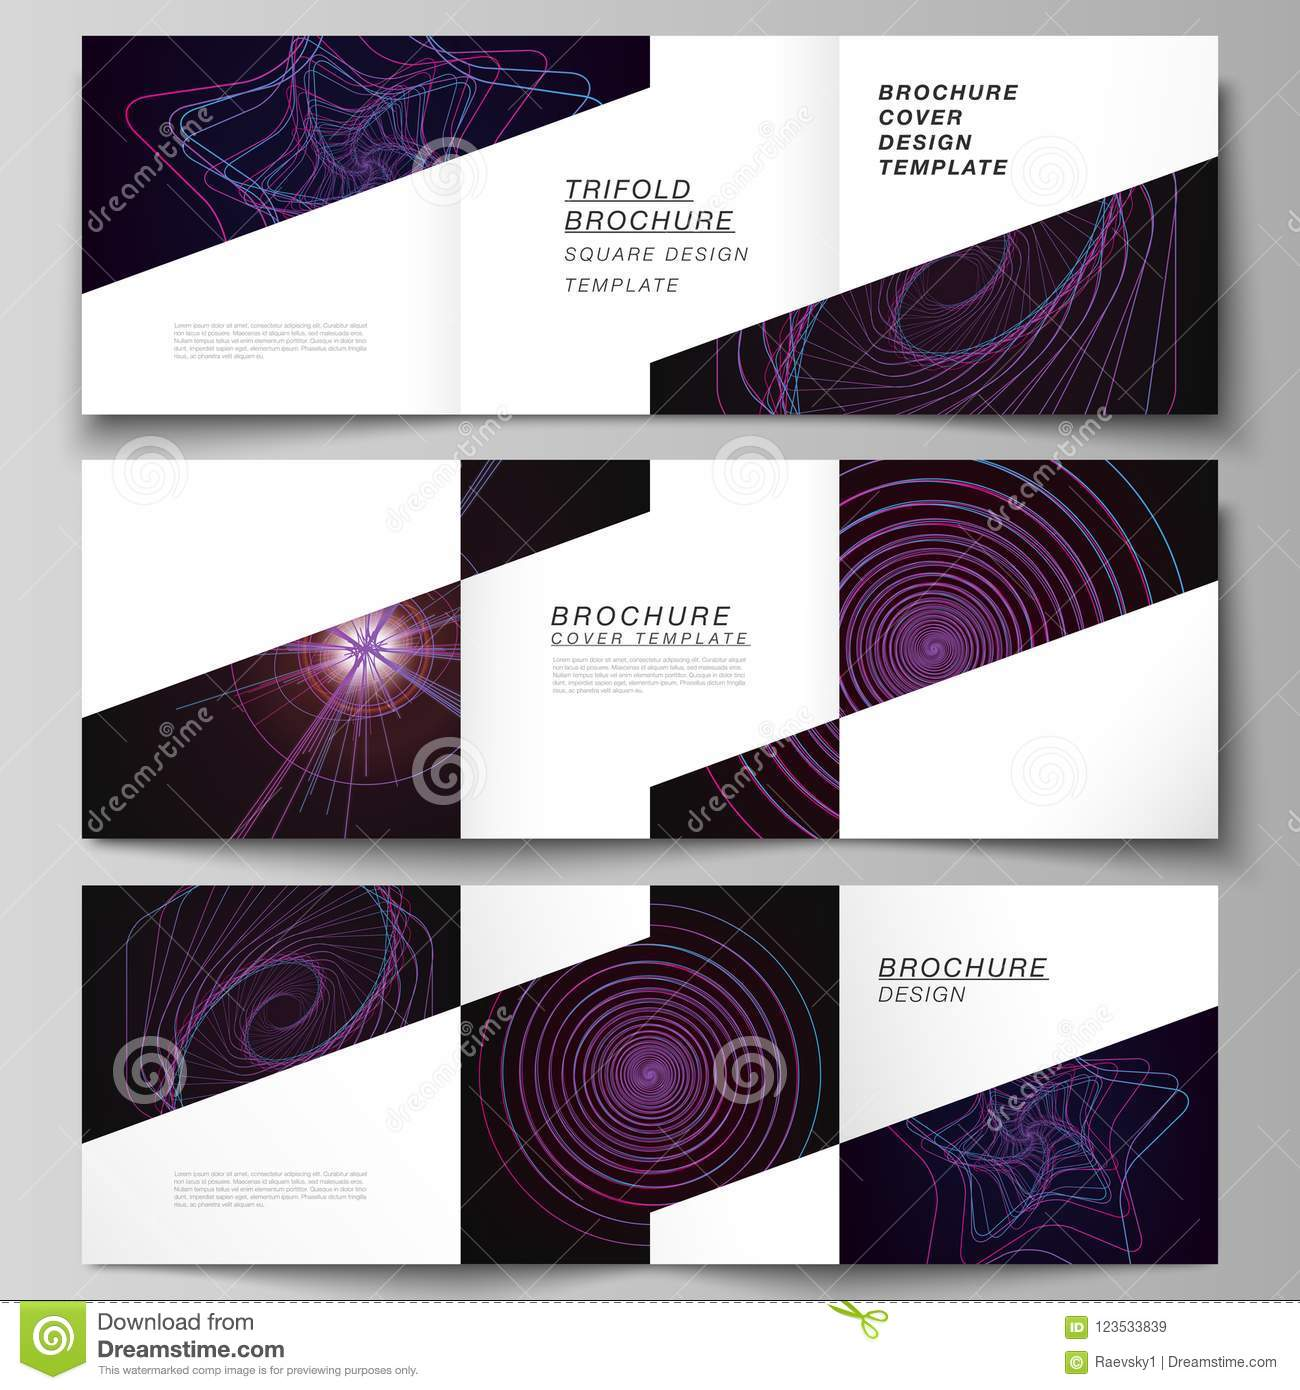 download vector layout of two square format covers design templates for trifold square brochure flyer